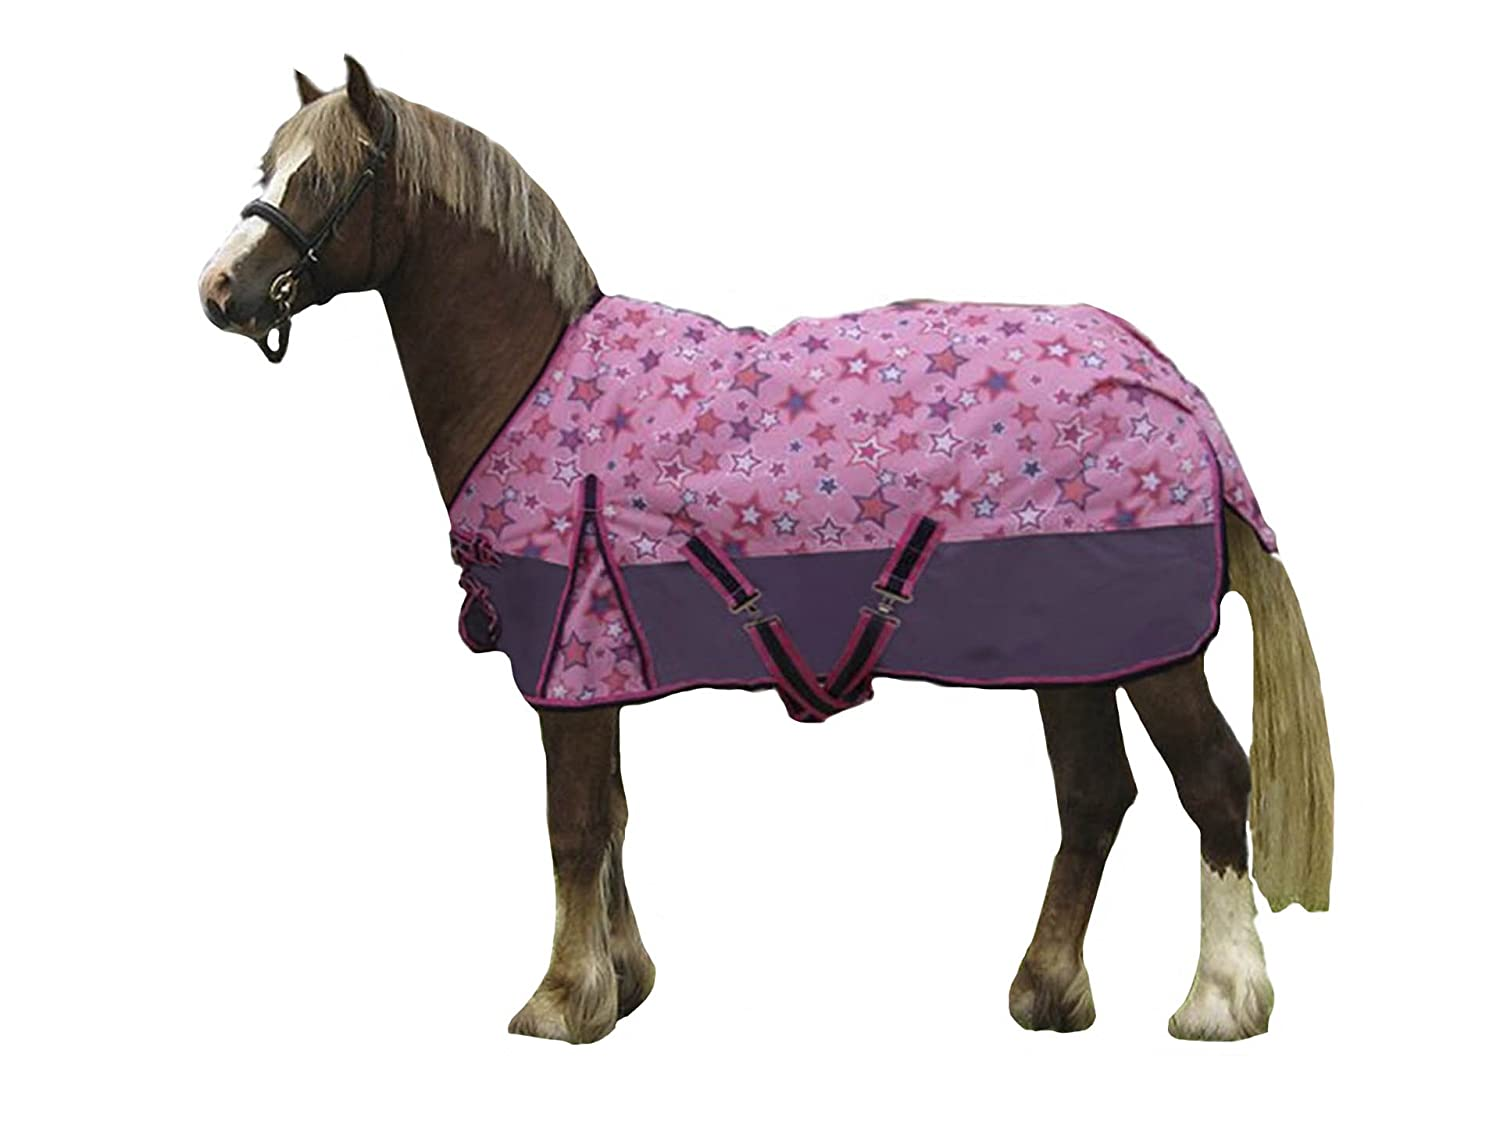 Derby Originals 600D Shimmering Star Miniature Horse and Pony Turnout Blanket 80-8051-PK-54-P